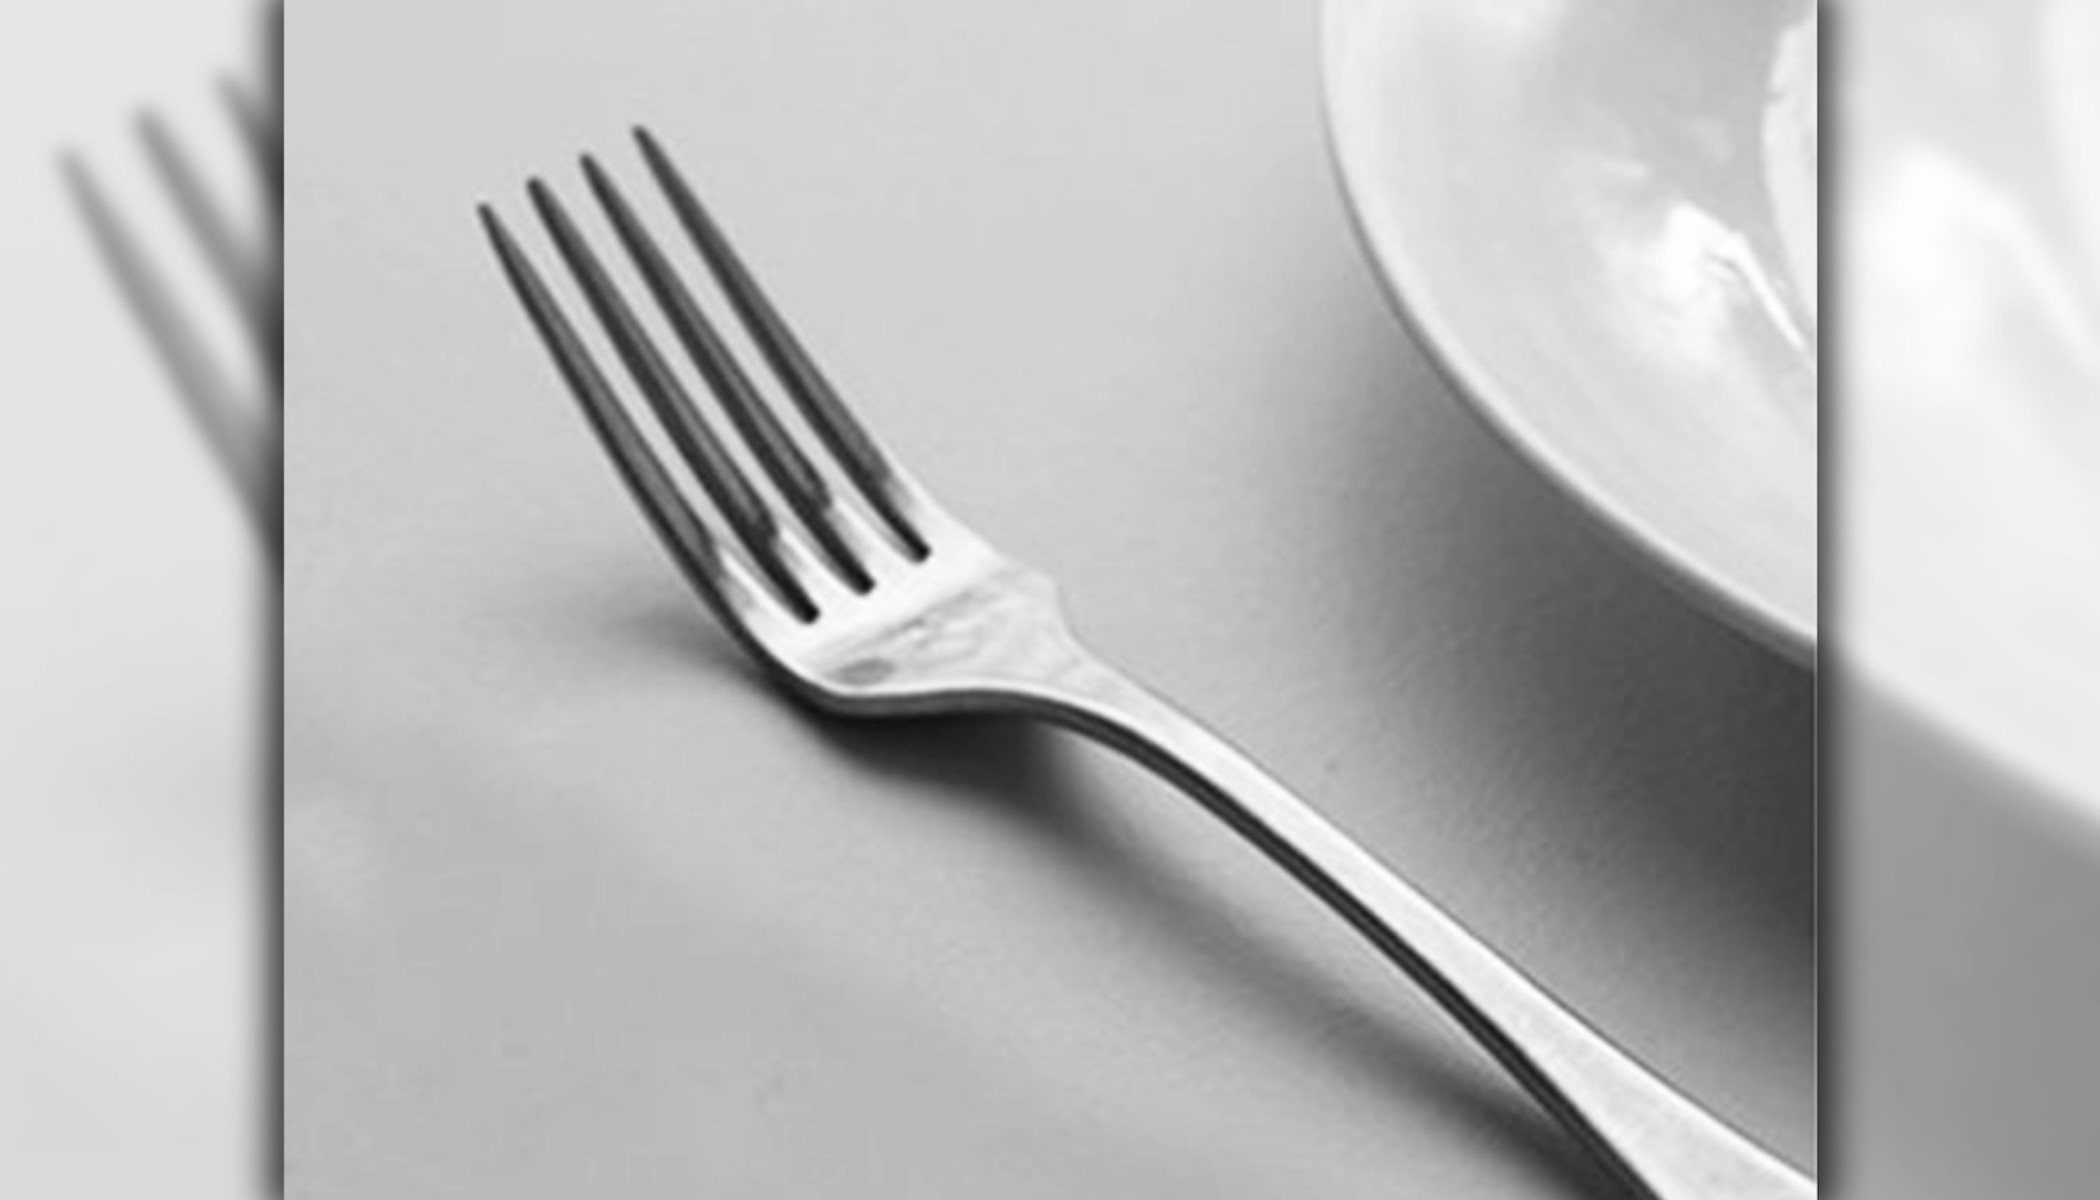 Woman's Wish to Be Buried With a Fork in Hand Teaches an Important Life Lesson